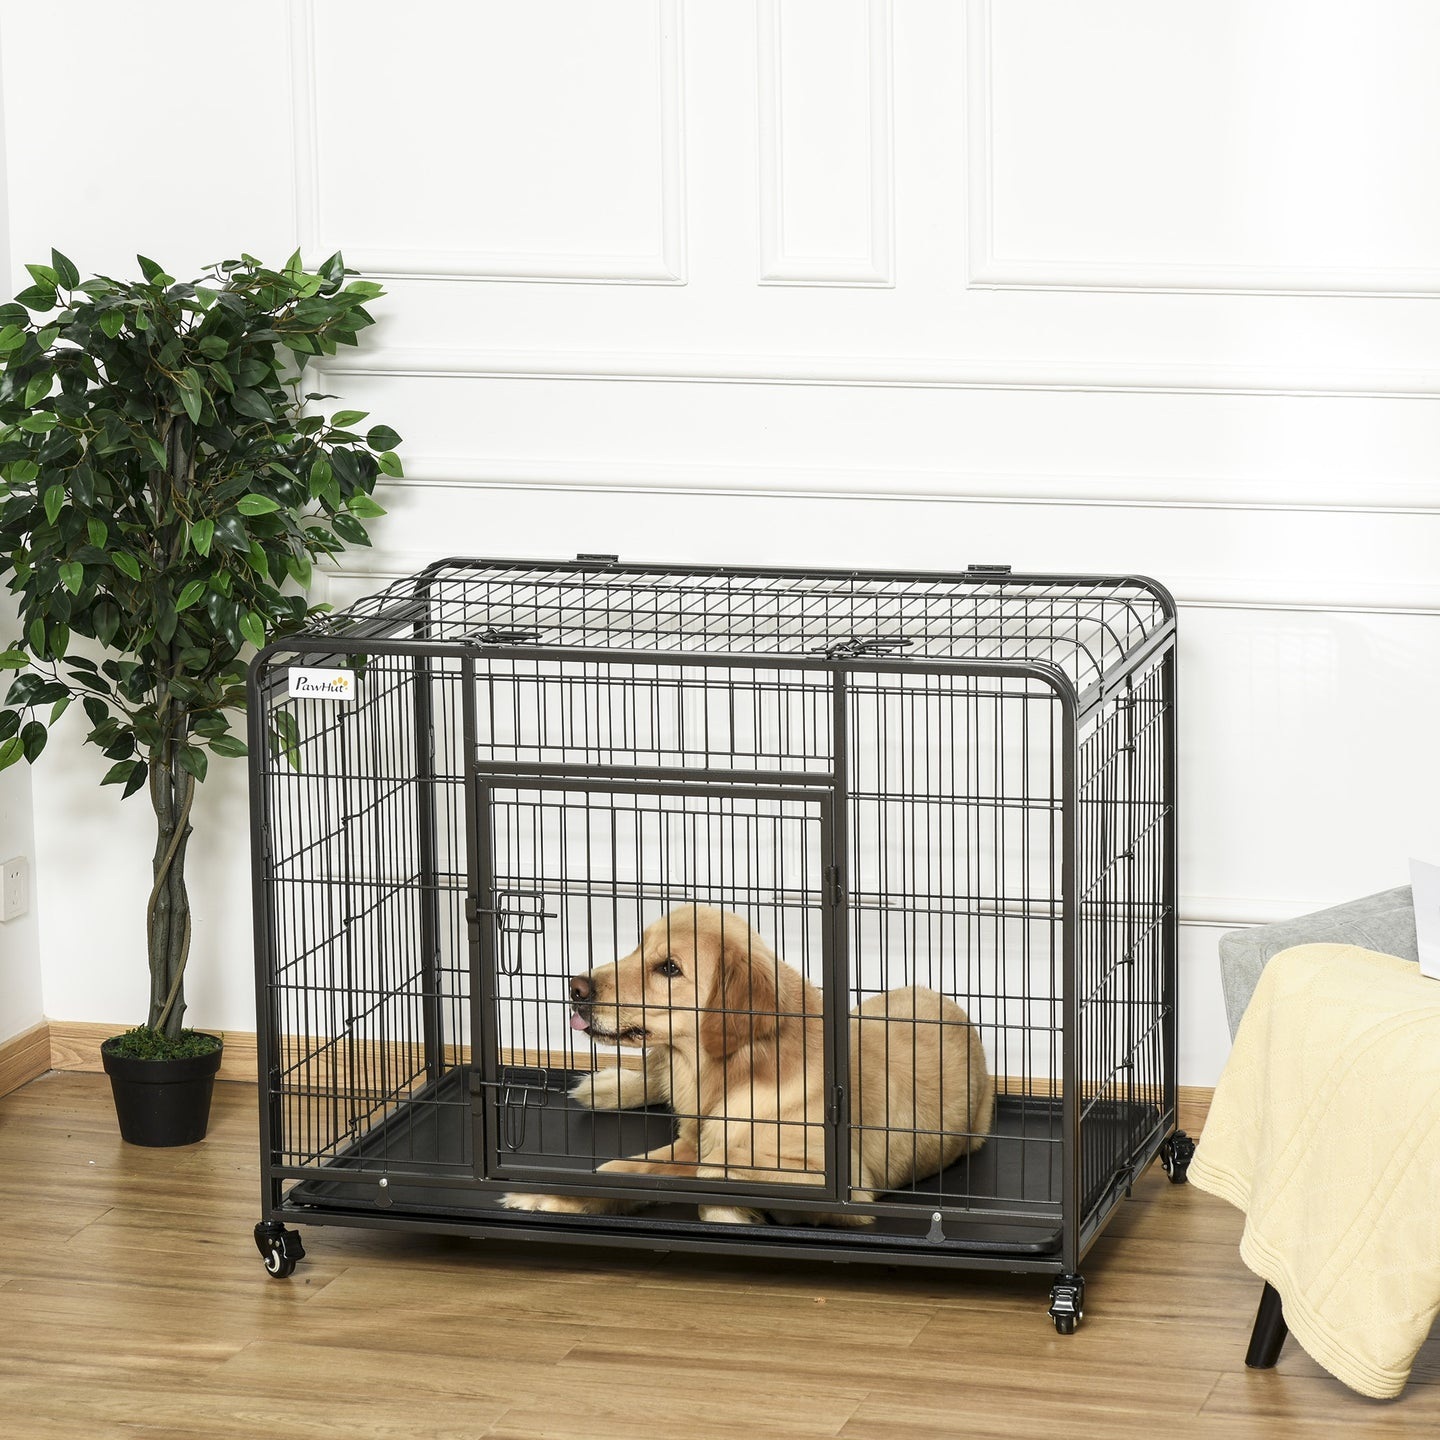 PawHut Heavy Duty Dog Crates Foldable Puppy Kennel and Cage Pet Playpen with Double Doors Removable Tray Lockable Wheels 109.5cm x 71cm x 78cm